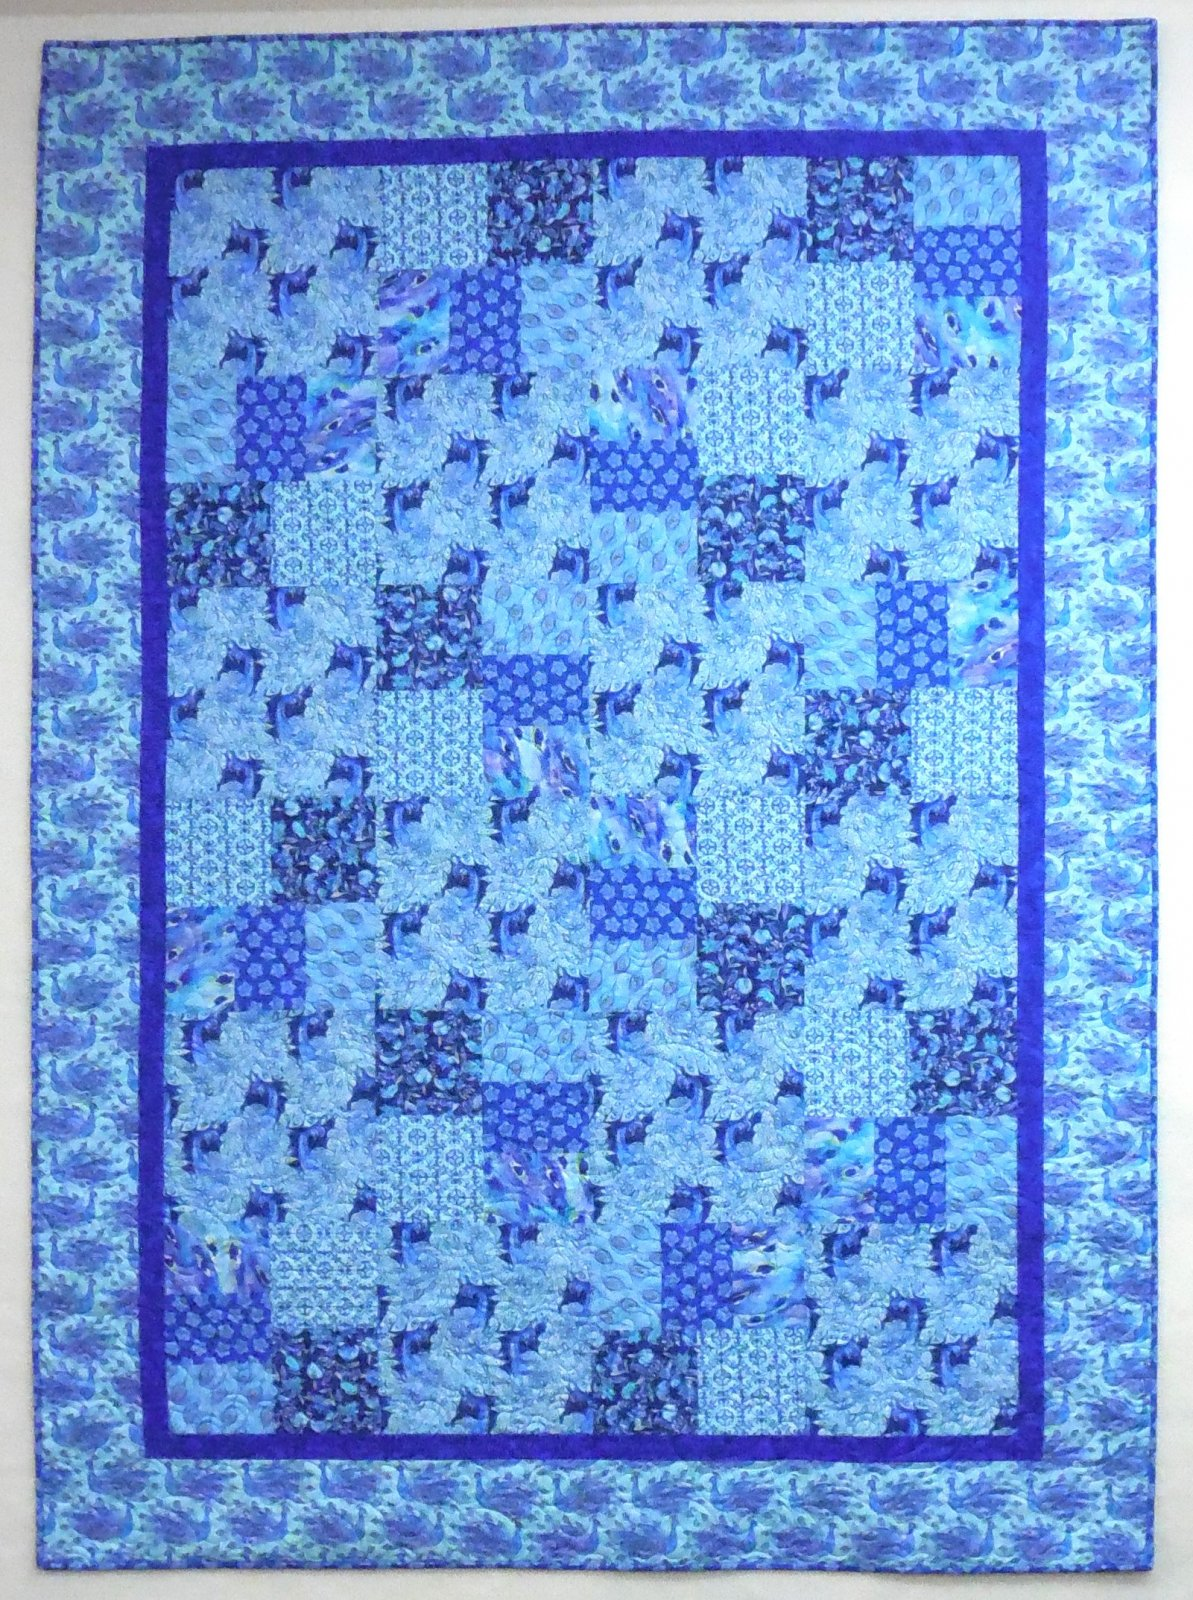 Just Can't Cut It Peacock Quilt Kit - 63 x 87